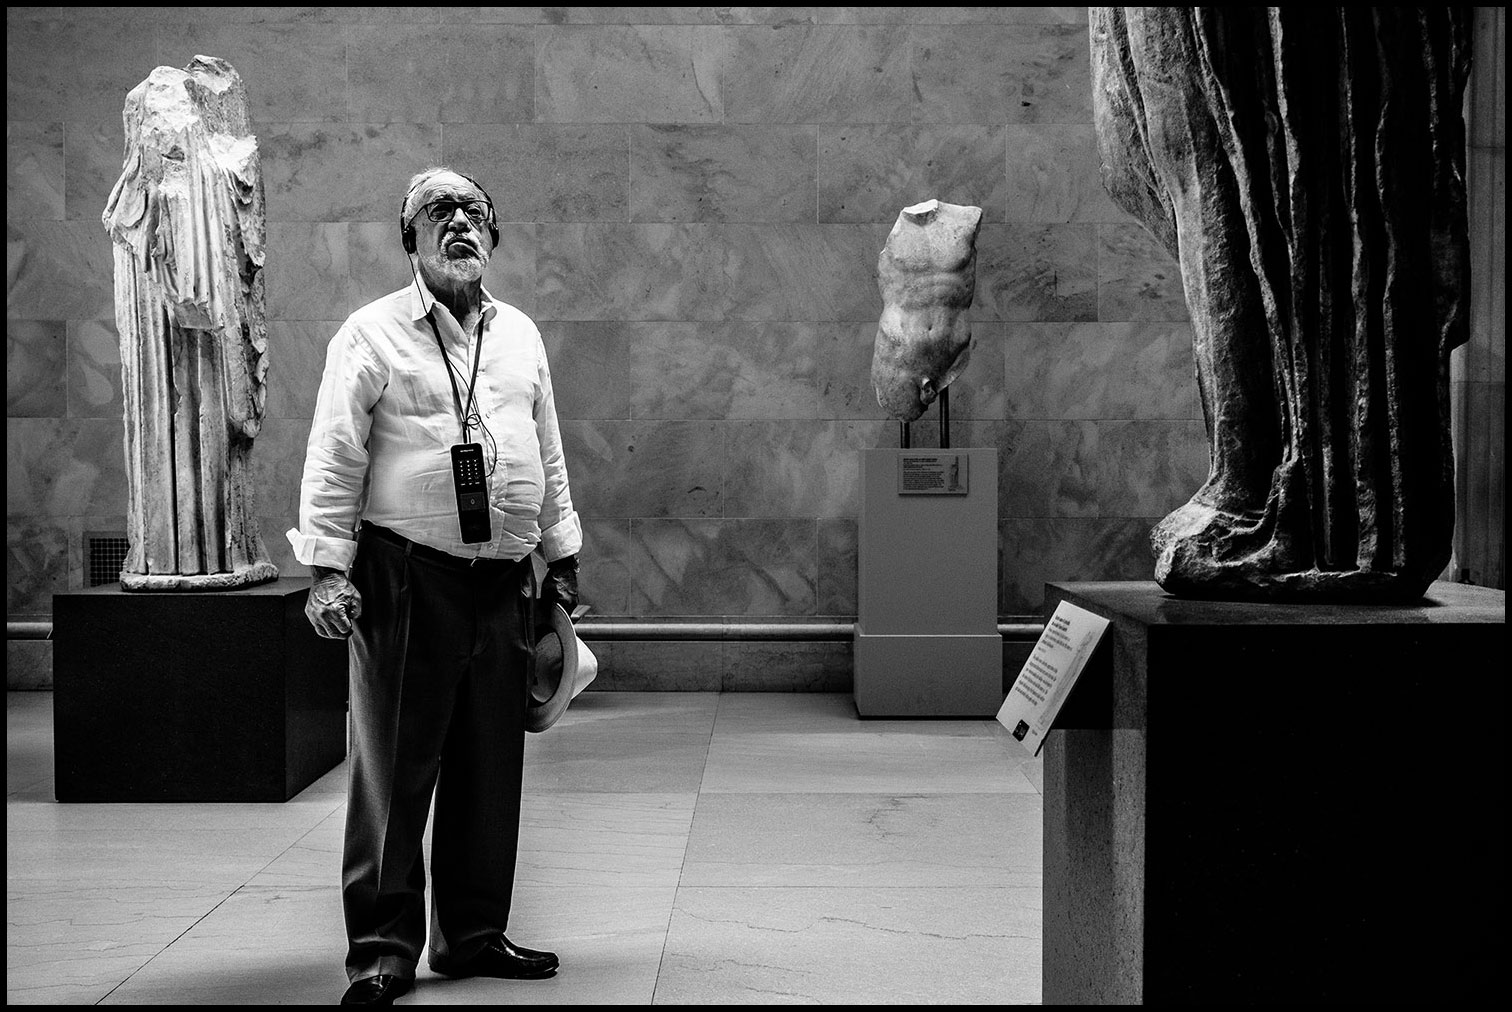 The Art Critic  (New York, NY) 2017 // A patron at the Metropolitan Museum of Art gazes at Greco-Roman statues while listening to the audio tour.